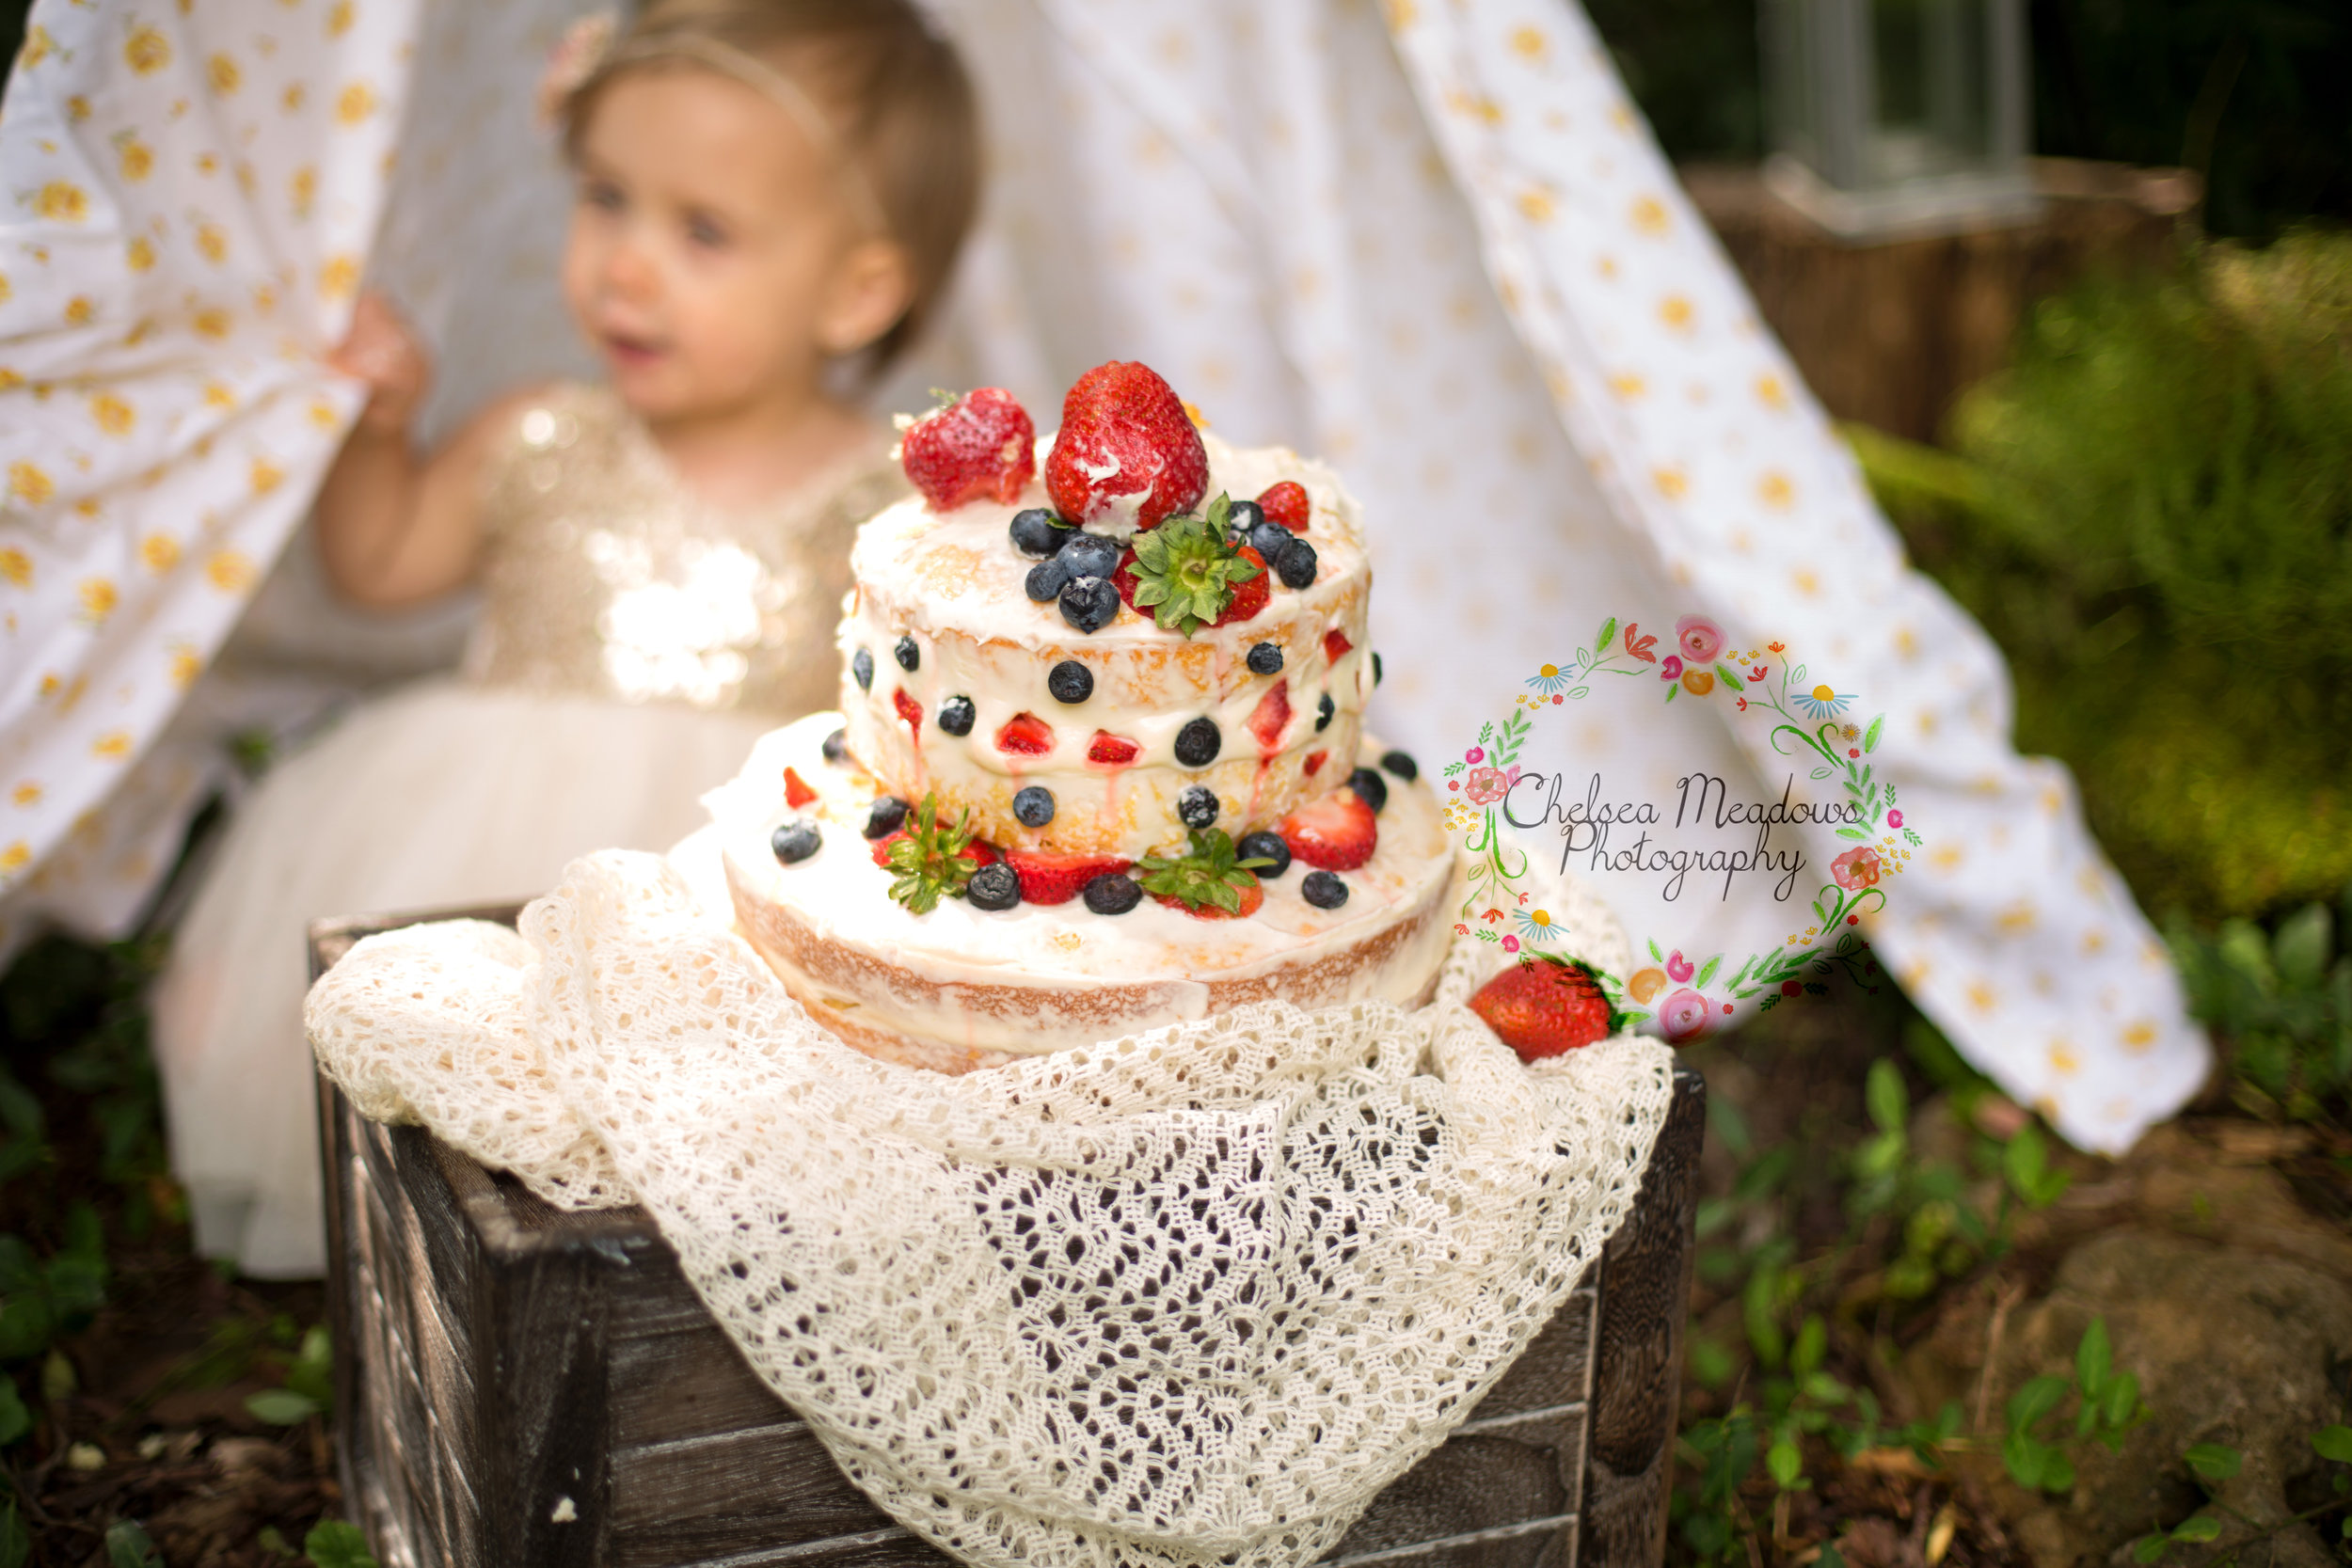 Paisley First Birthay Cake Smash - Nashville Family Photographer - Chelsea Meadows Photography (1).jpg